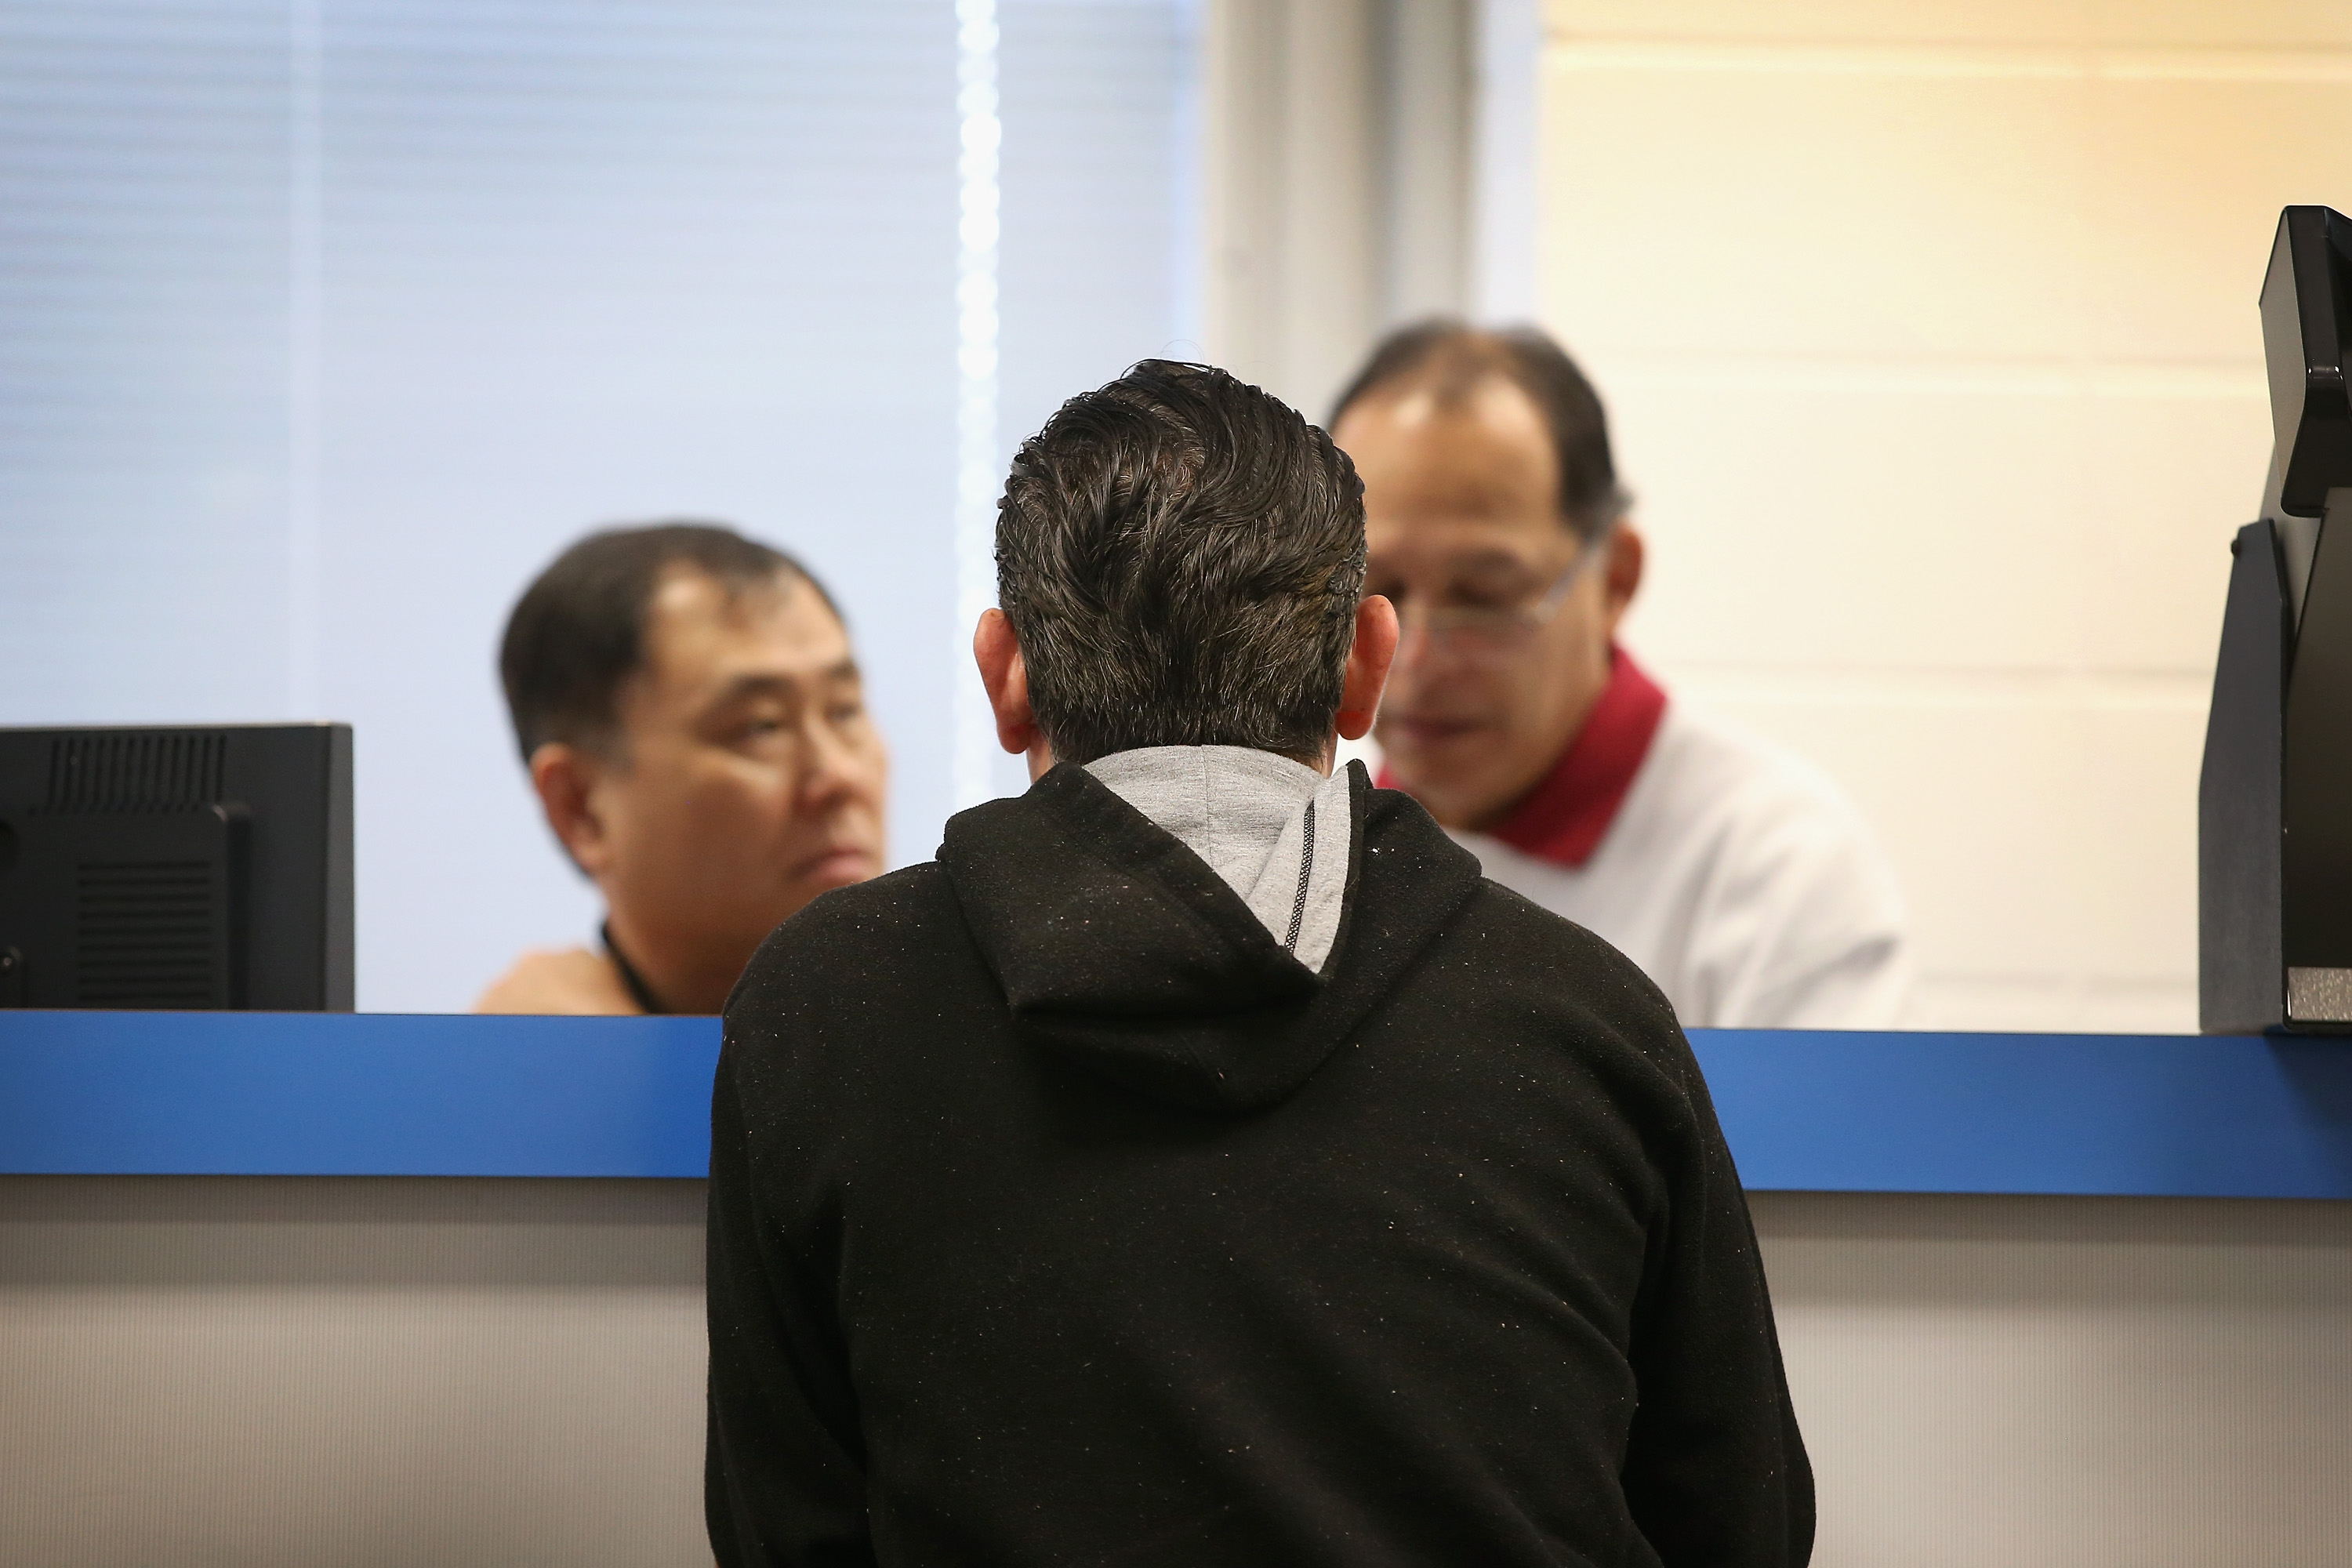 In New Jersey, Undocumented Immigrants Are Now Eligible to Get a Driver's License